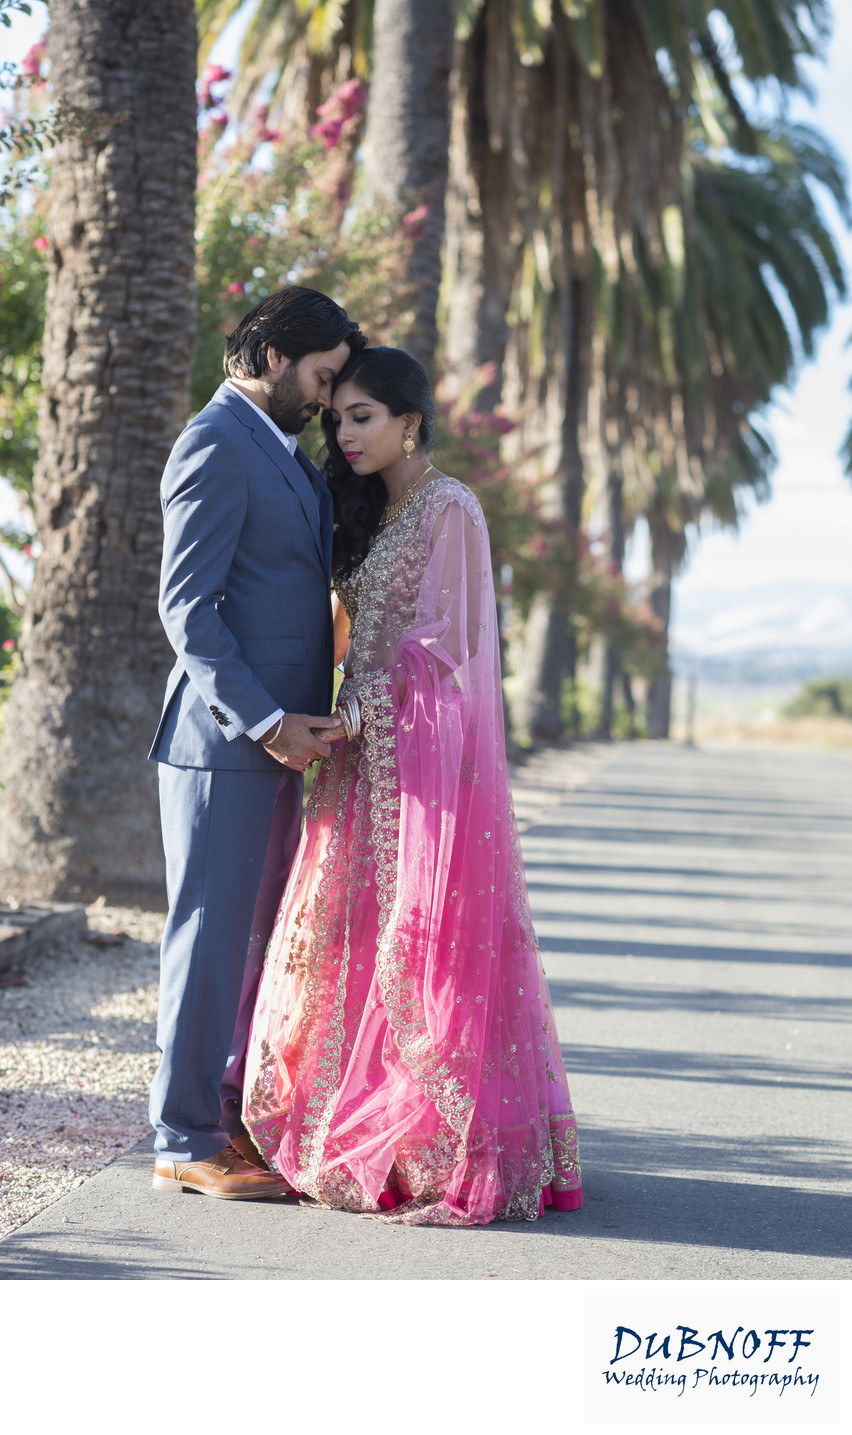 Indian Wedding Photography Palm Event Center in Pleasanton